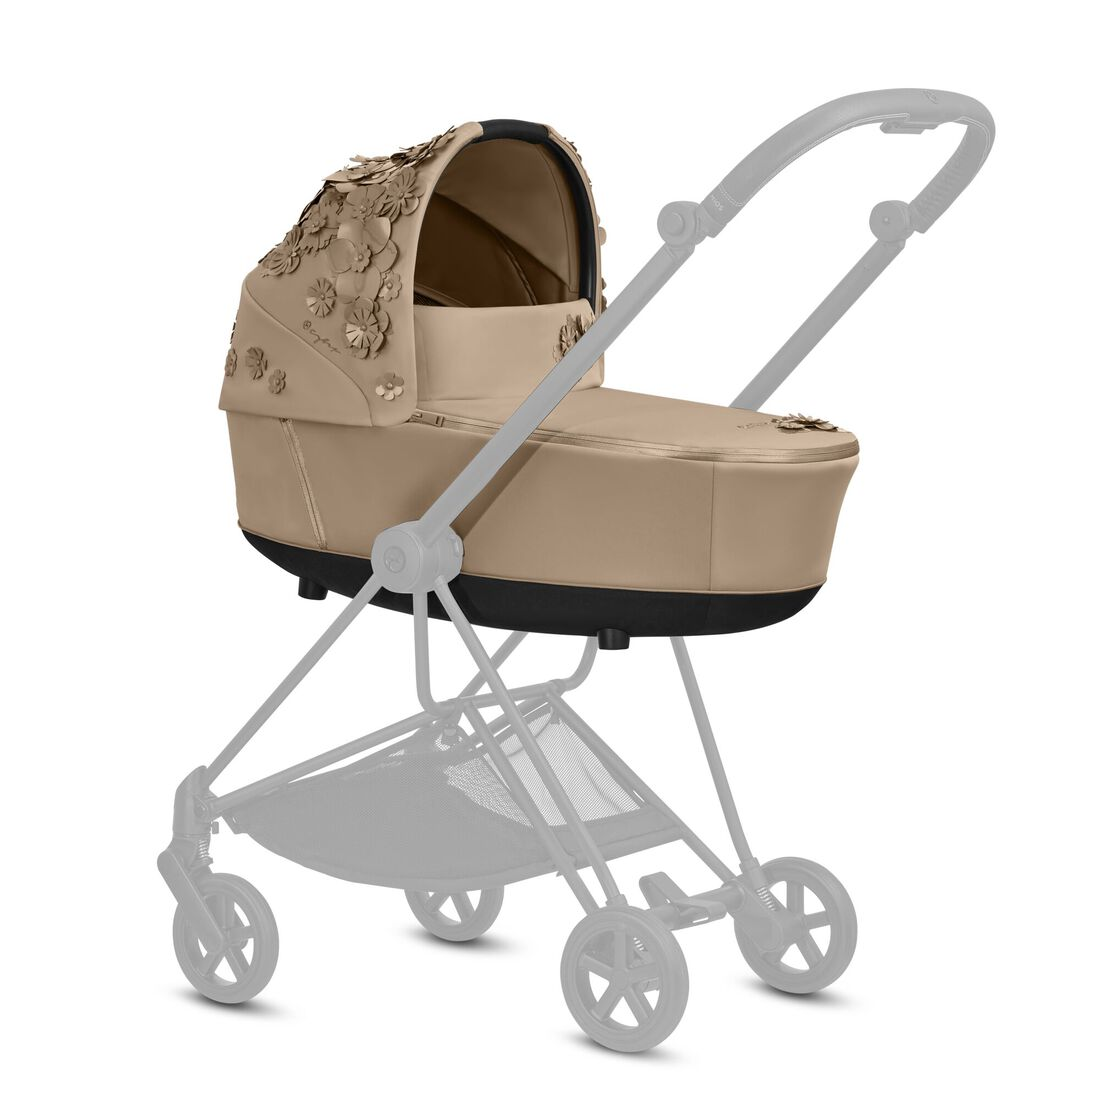 CYBEX Mios Lux Carry Cot - Nude Beige in Nude Beige large image number 3